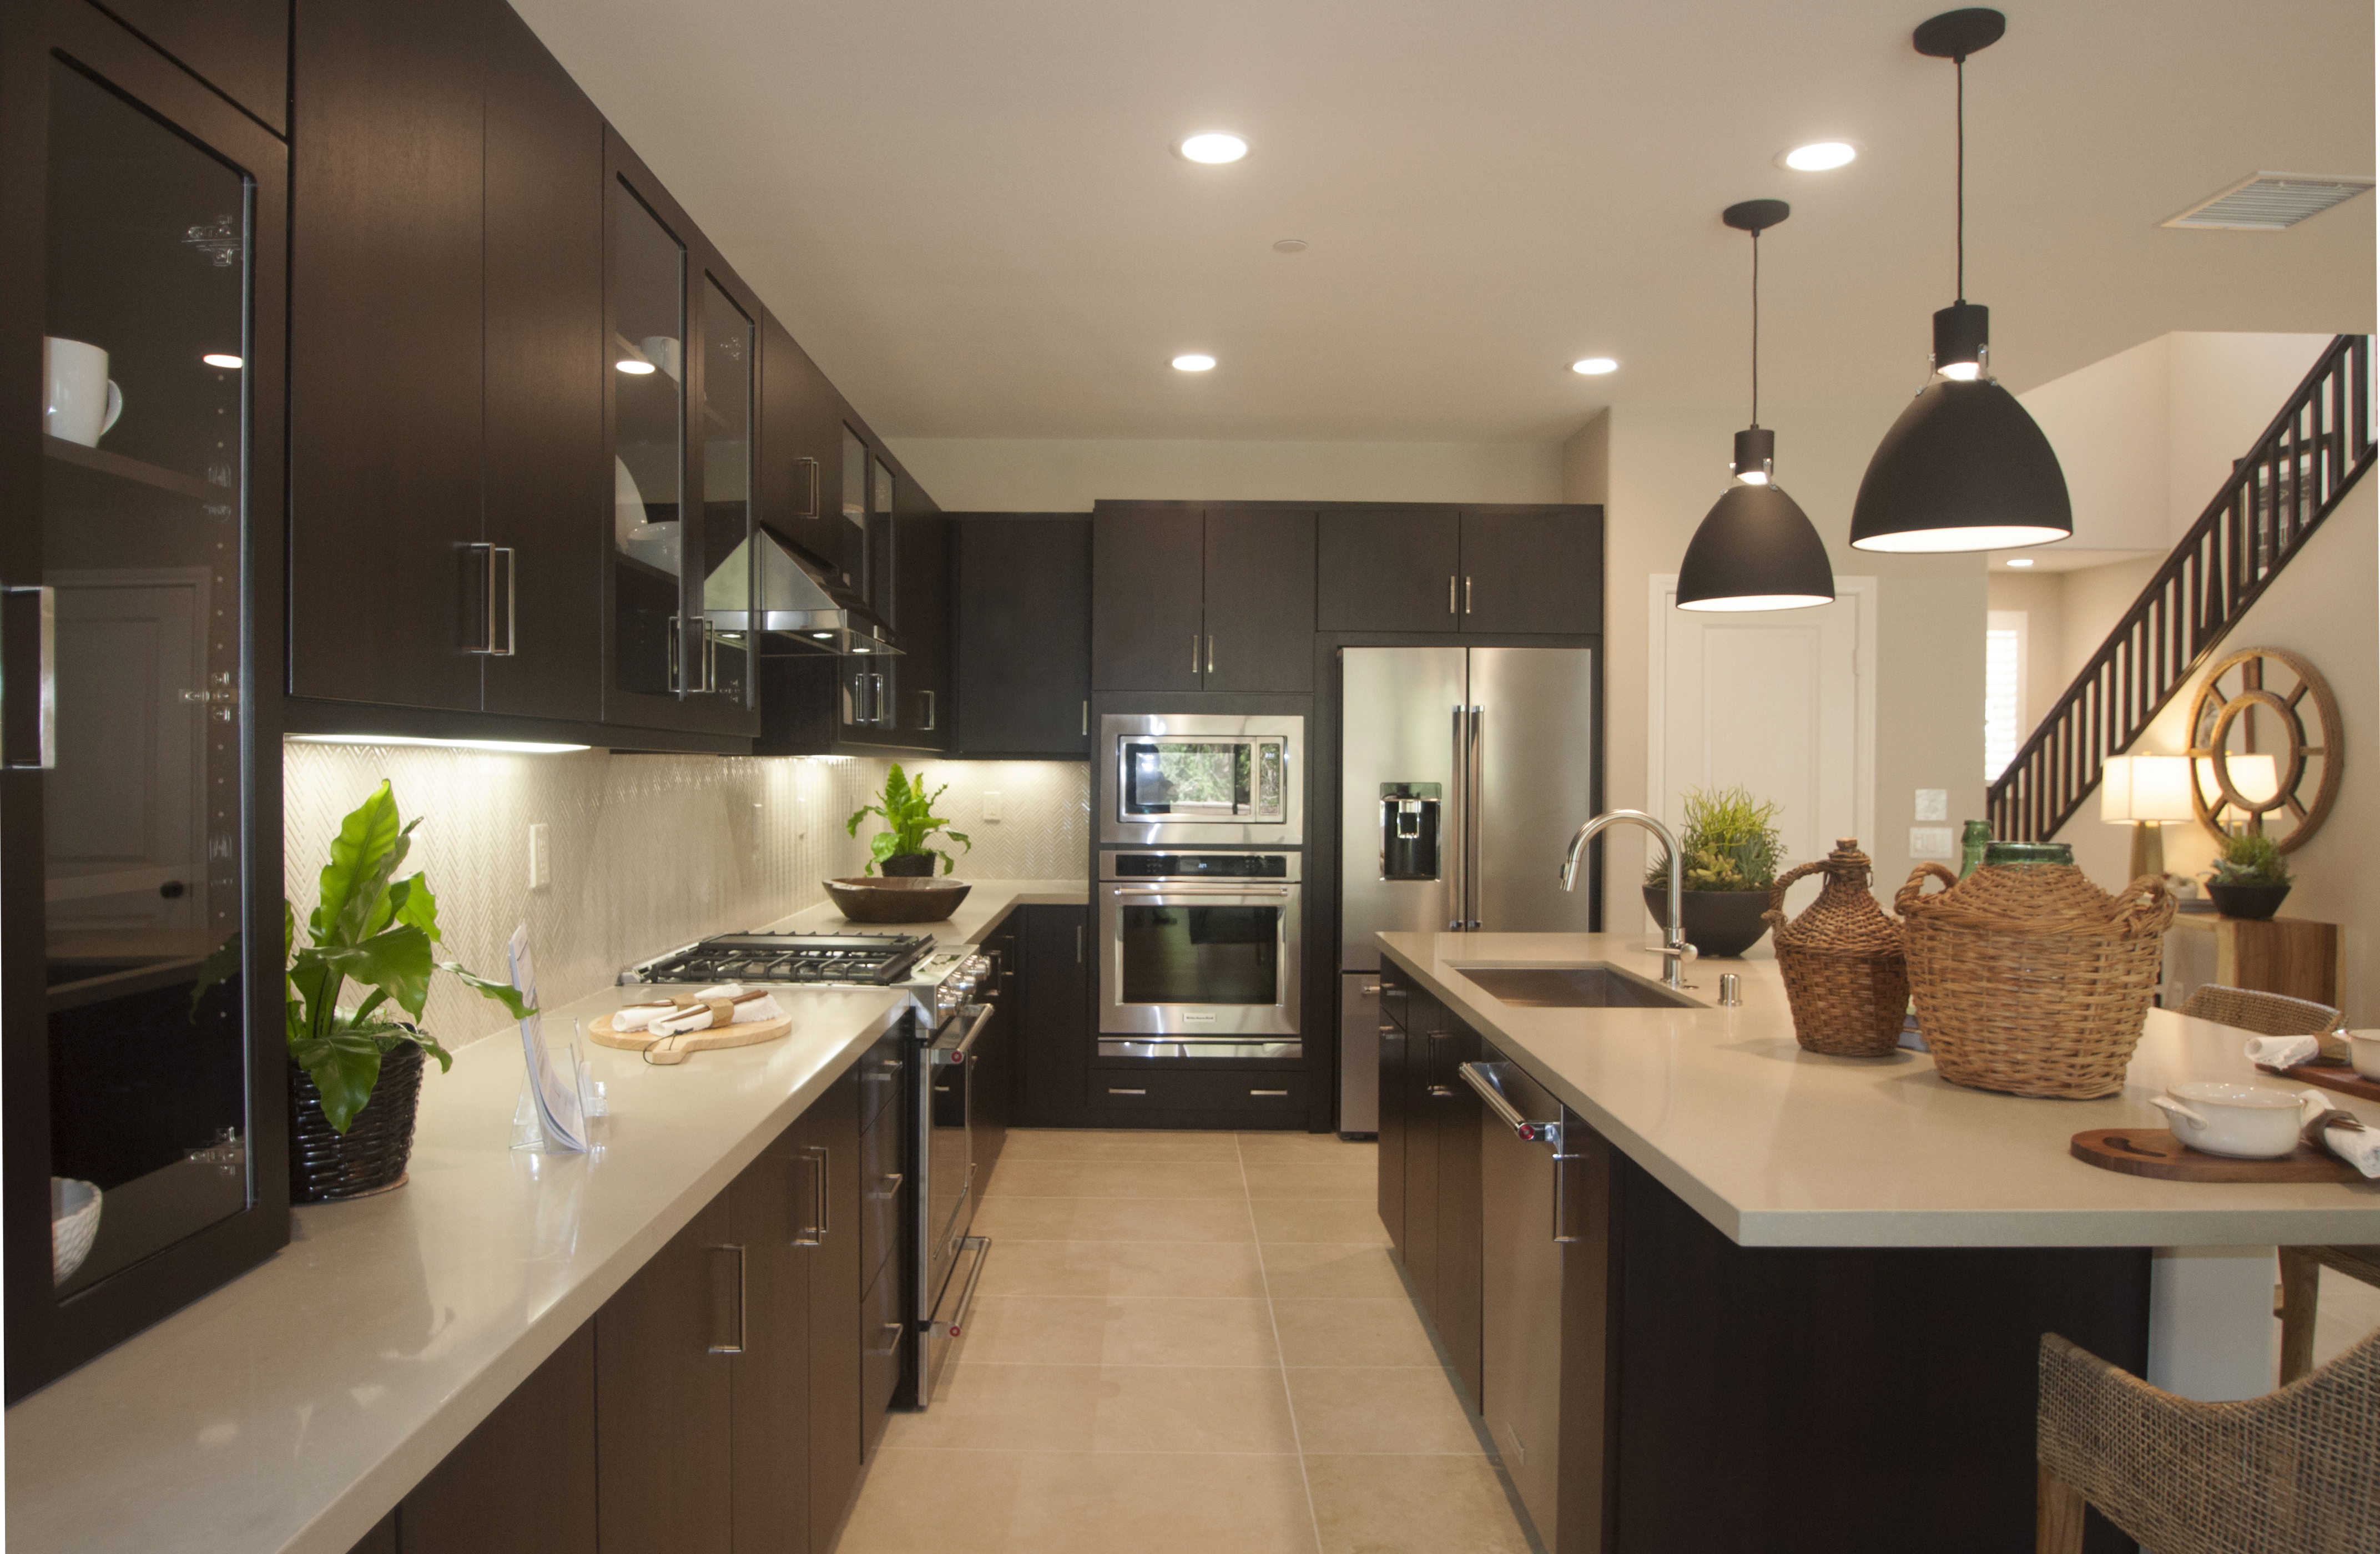 Kitchen Cabinets From Shutters on shutter medicine cabinet, bath vanity cabinets, shutter accessories, poplar wood cabinets,